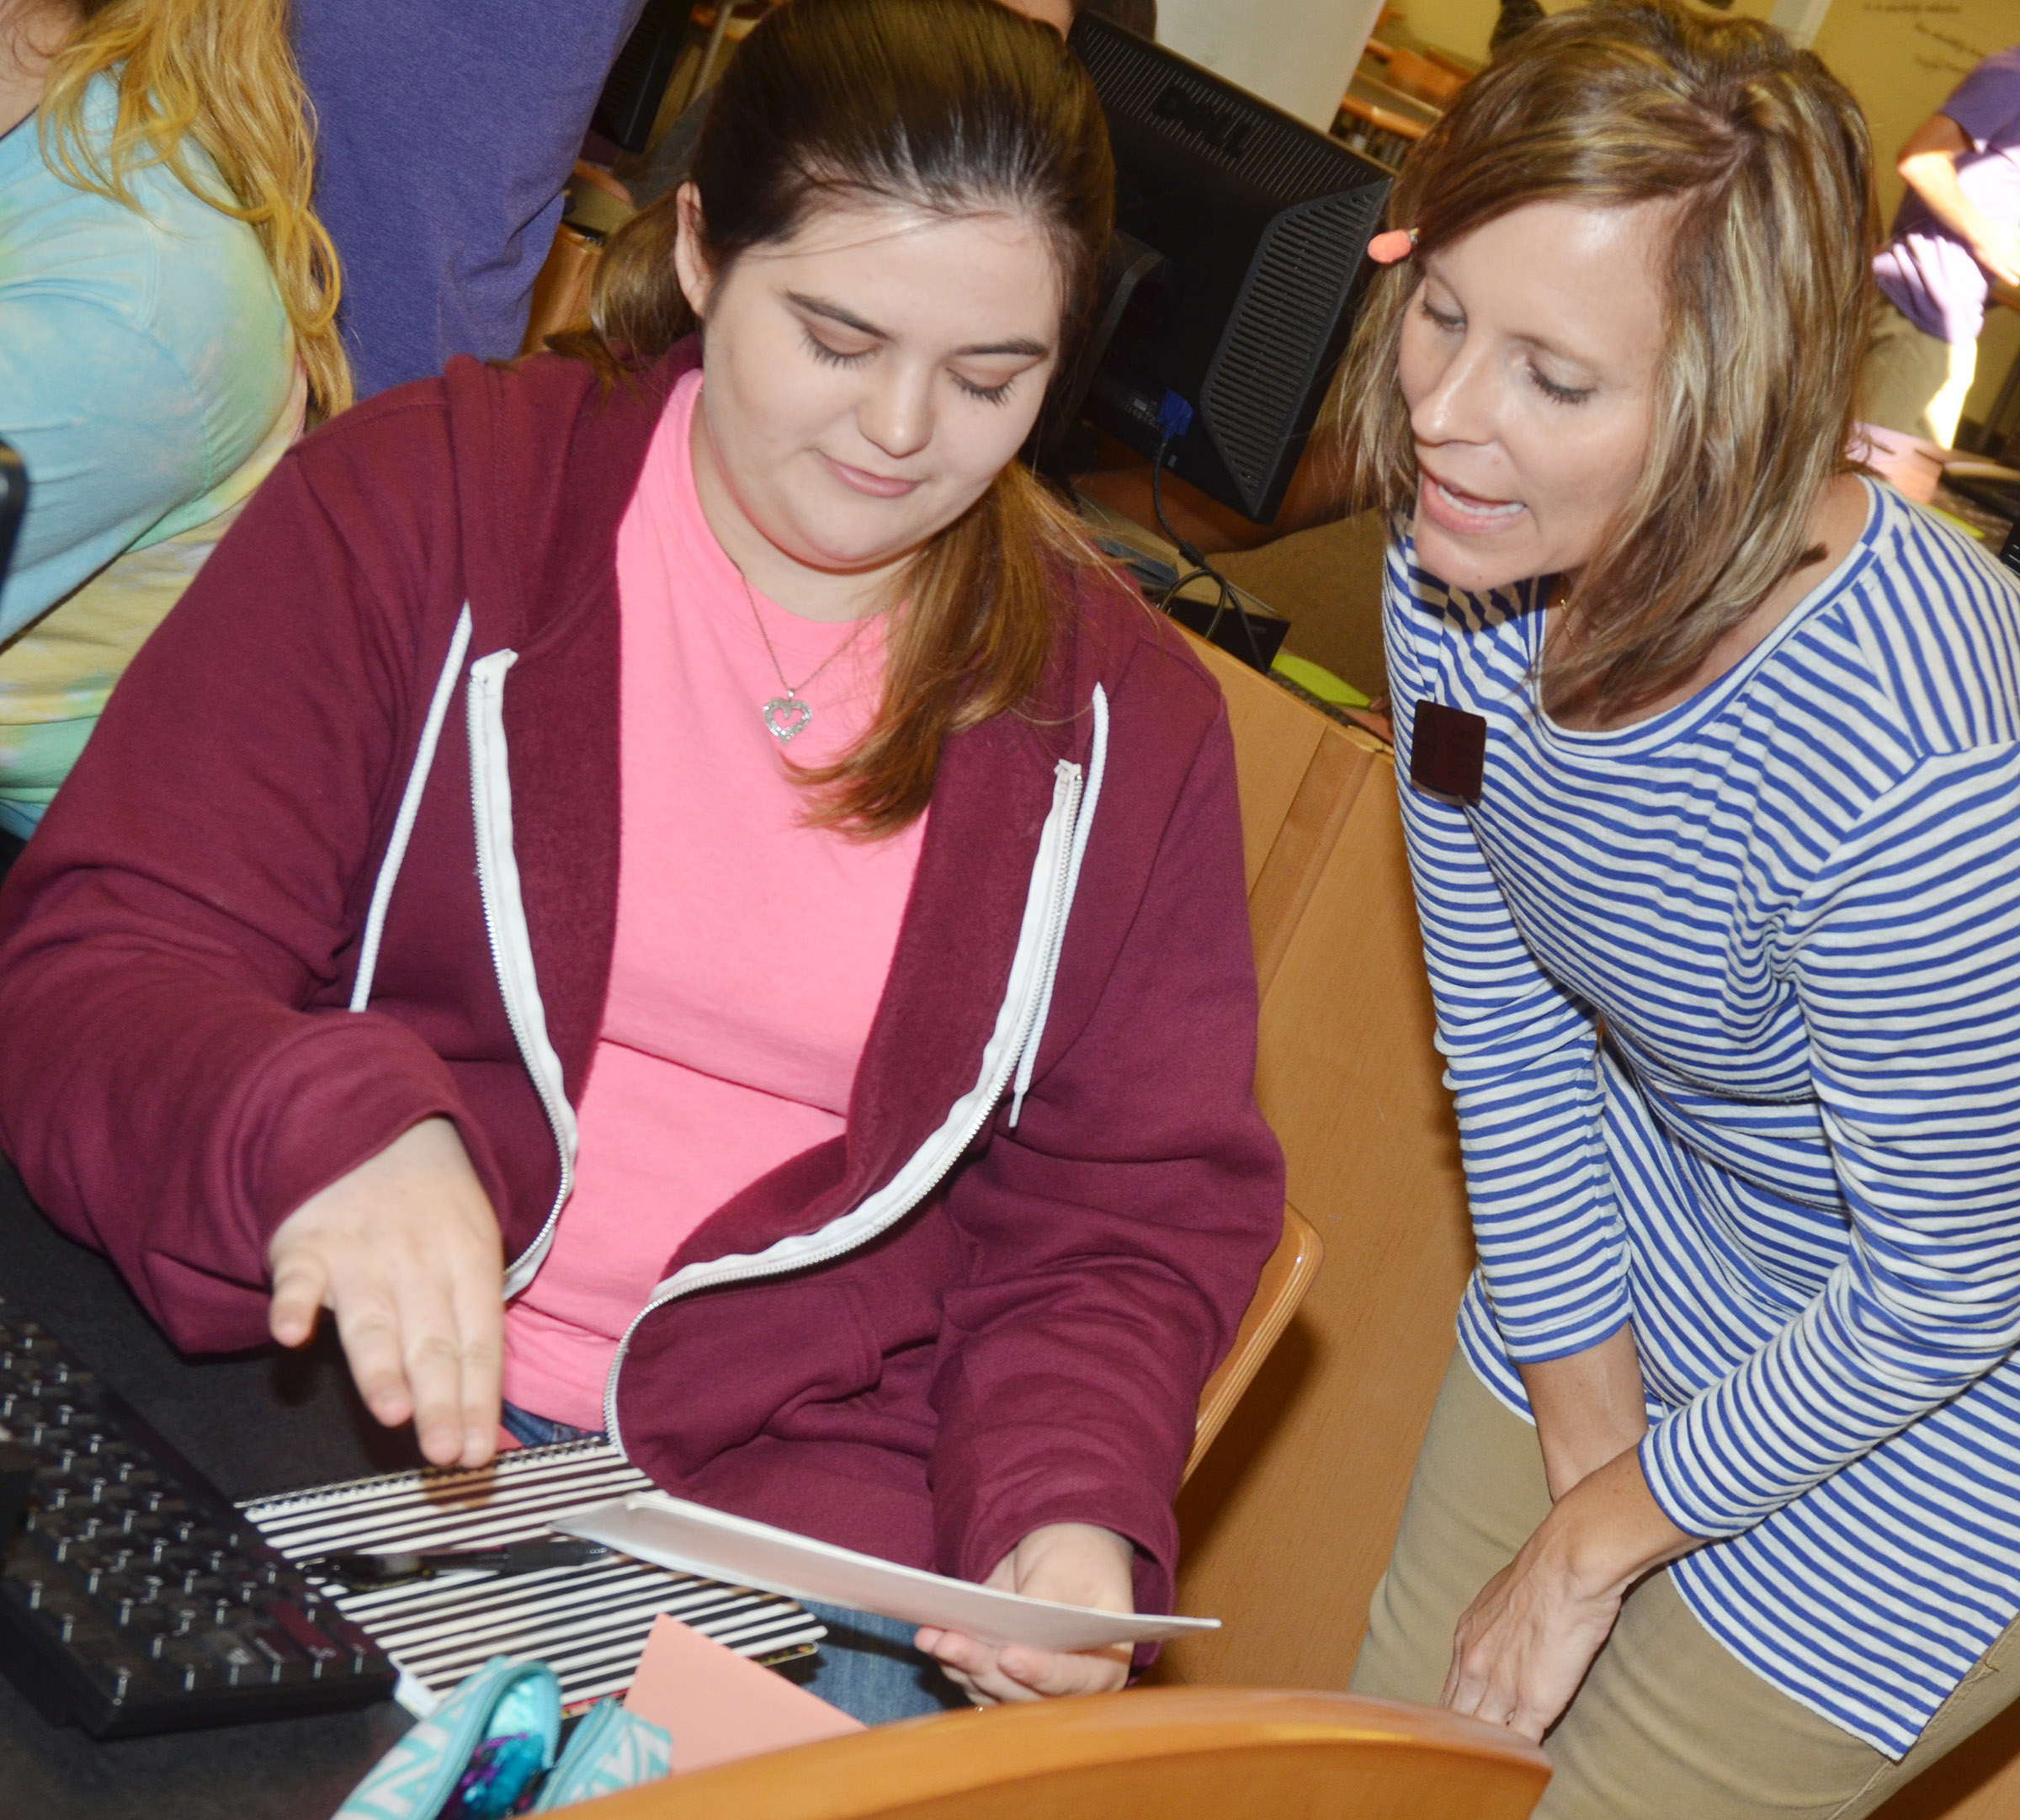 Charity Ferguson, director of admissions at Lindsey Wilson College, helps CHS senior Vivian Brown with a financial aid question.